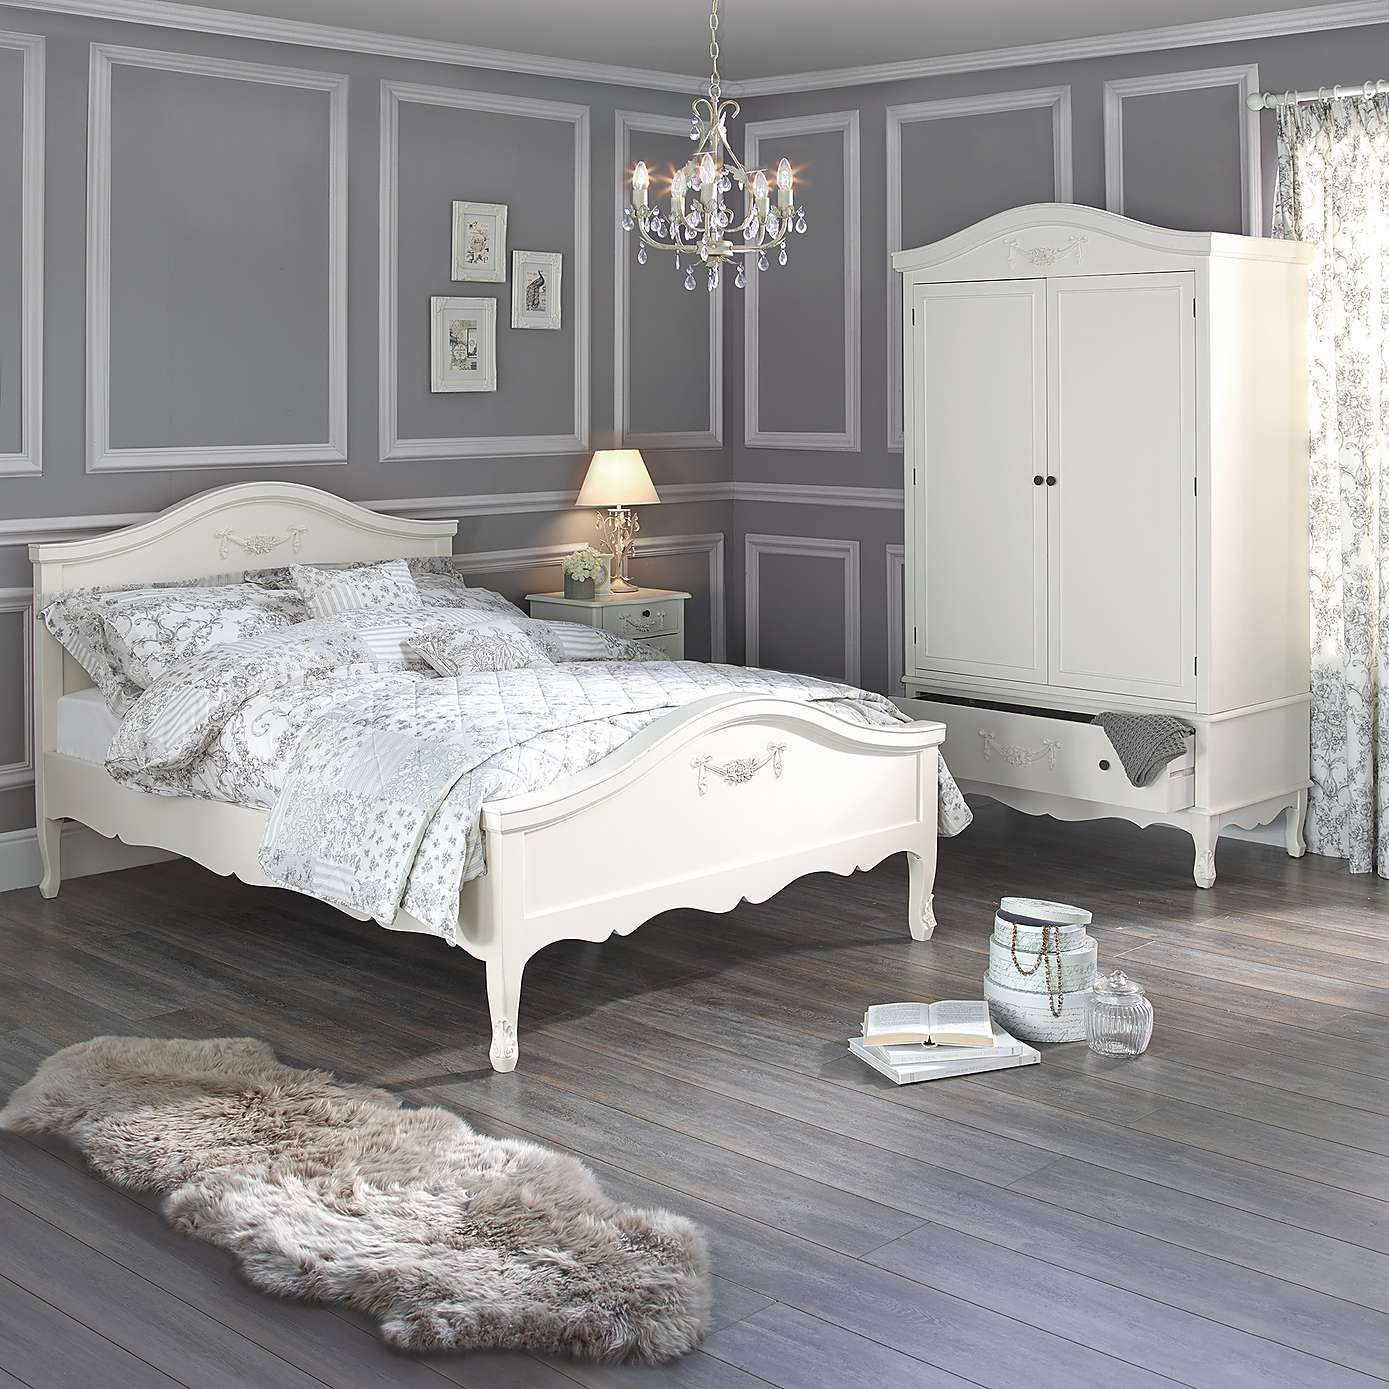 Toulouse White Bedroom Furniture Collection Dunelm Belle - Toulouse bedroom furniture white